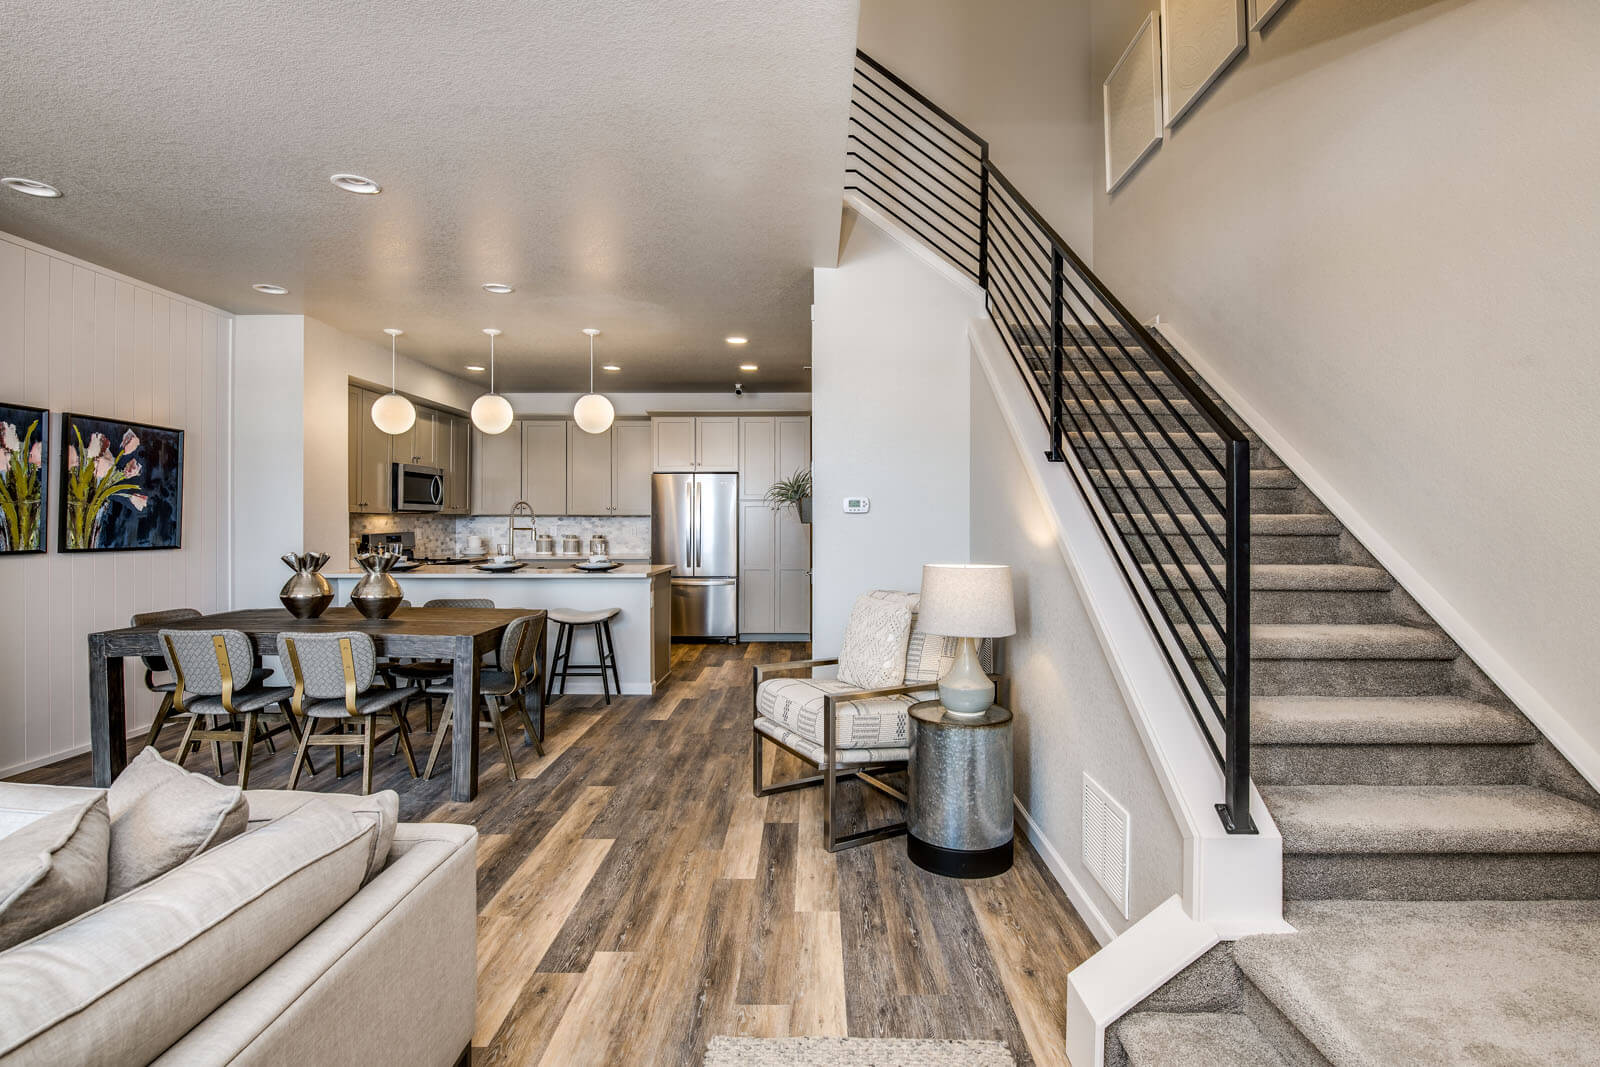 New Denver  Model Home Sage in Lincoln Creek, located at 6835 Dewey Drive, Parker, CO Built By Cardel Homes Denver